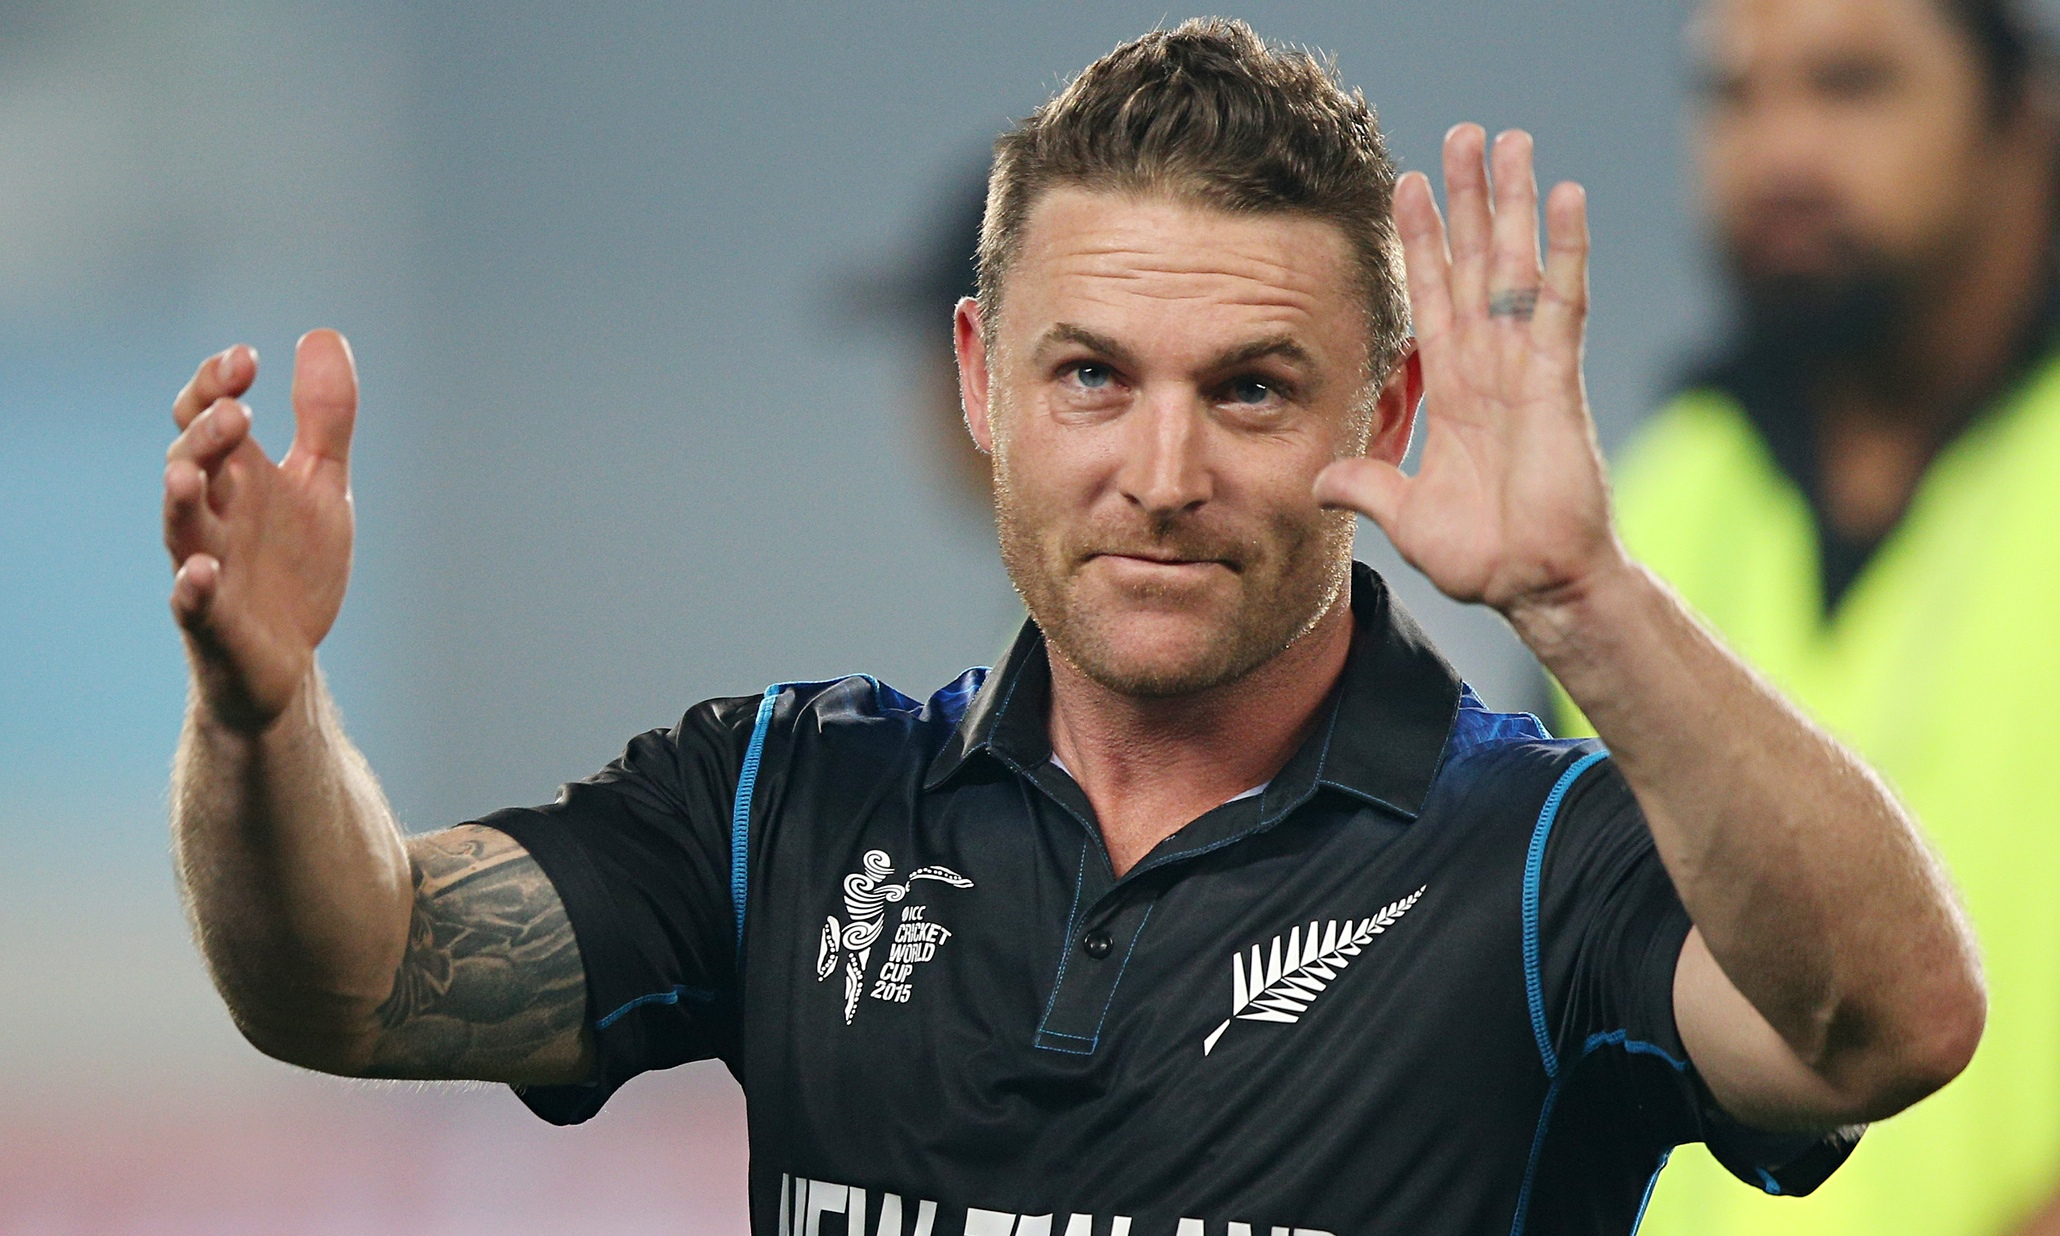 New Zealand S Brendon Mccullum Signs For Birmingham Bears For T20 Blast Sport The Guardian